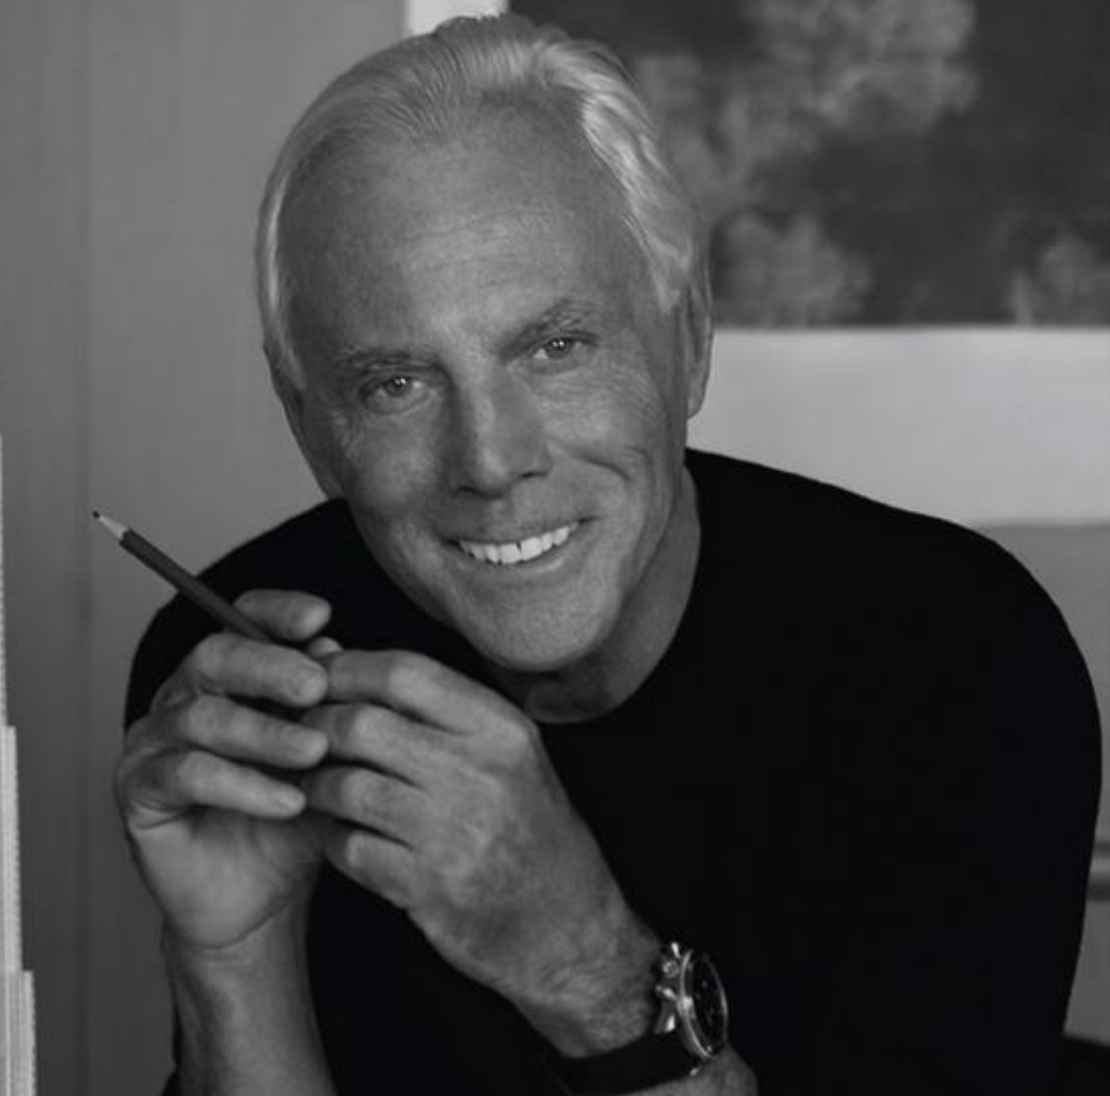 the entrepreneur giorgio armani Giorgio armani & sergio galeotti (founders of giorgio armani)  george  forrester colony: founder of forrester research , founded in july 1983  entrepreneur.